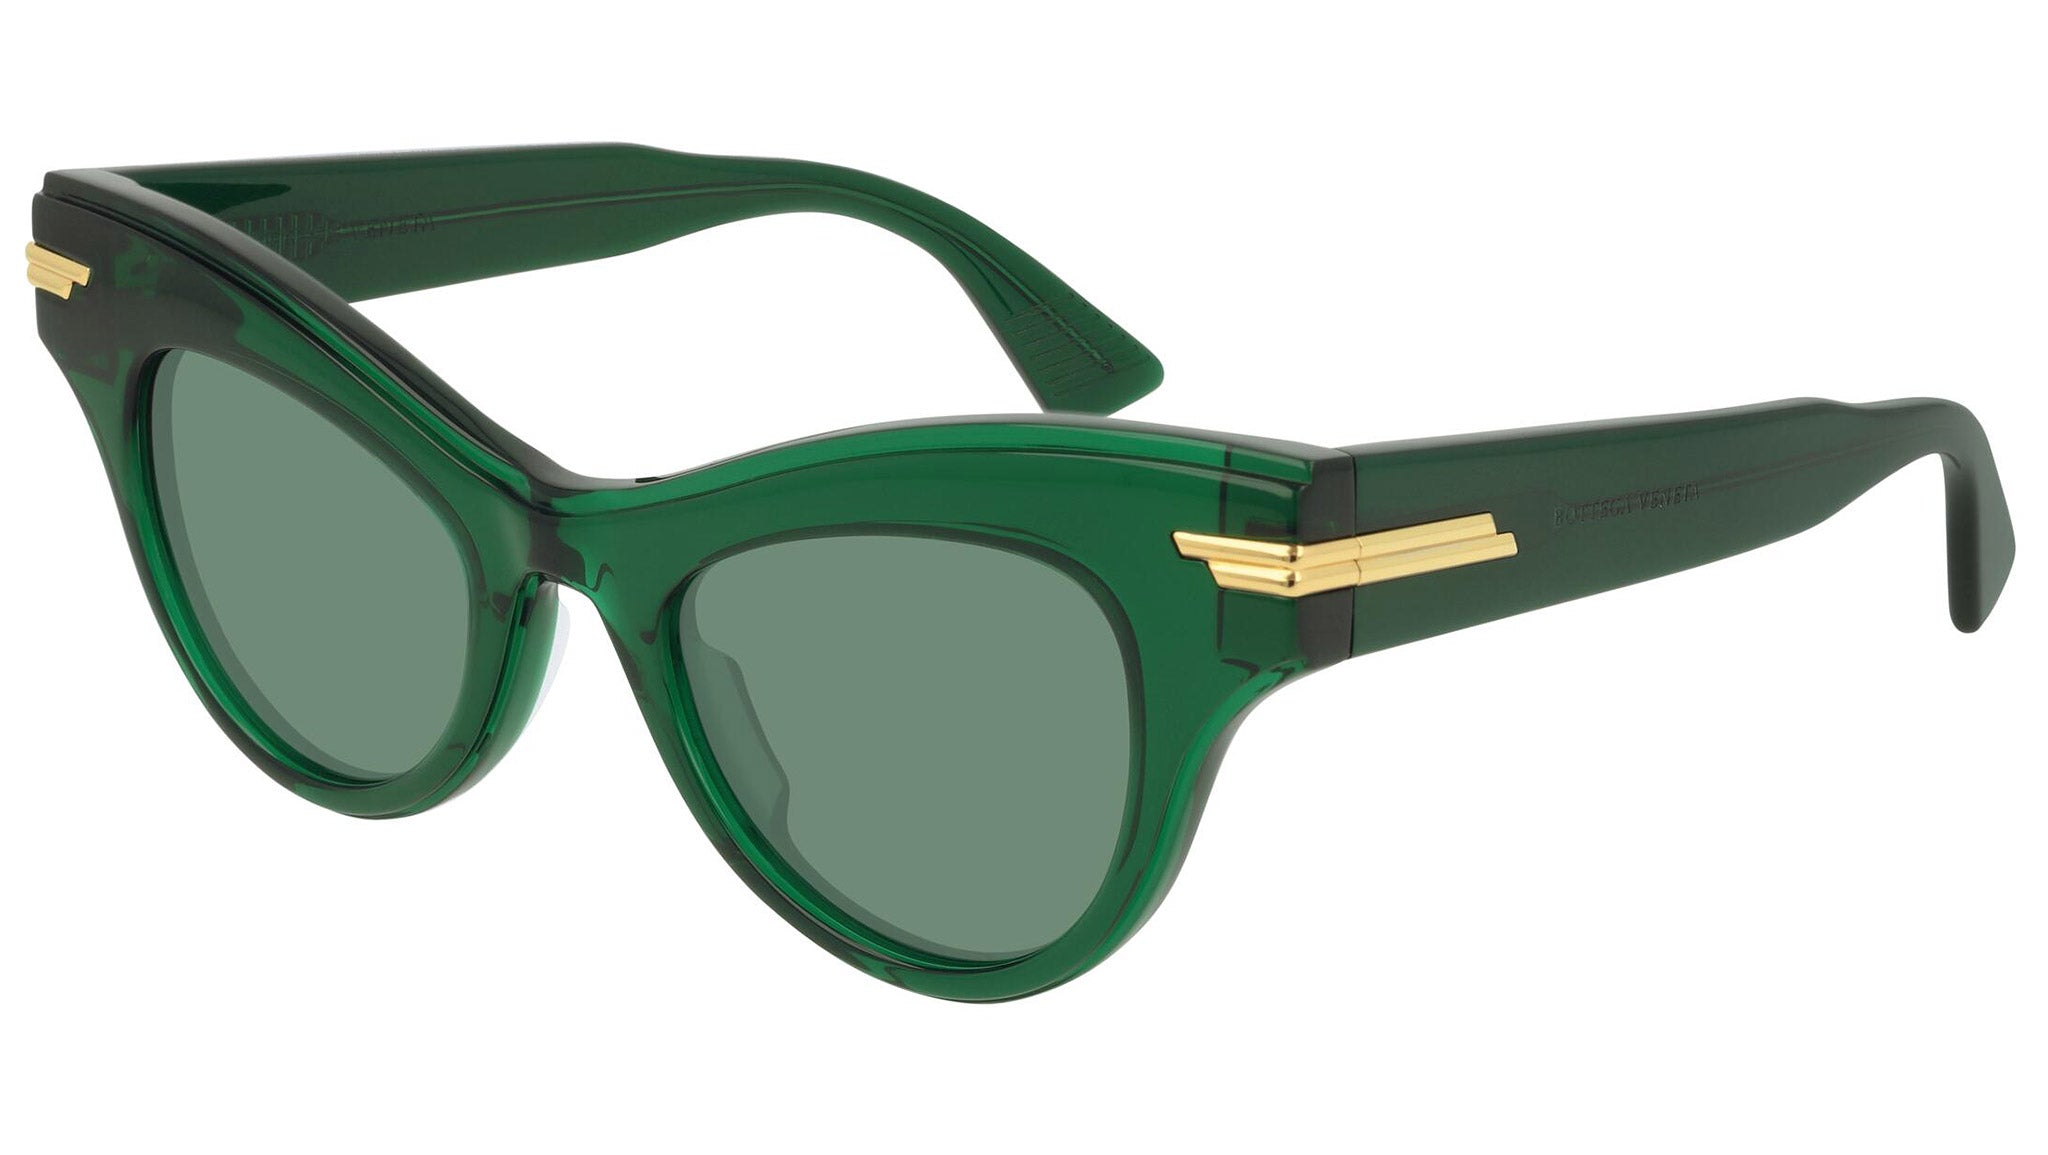 BV1004S 005 green and solid green